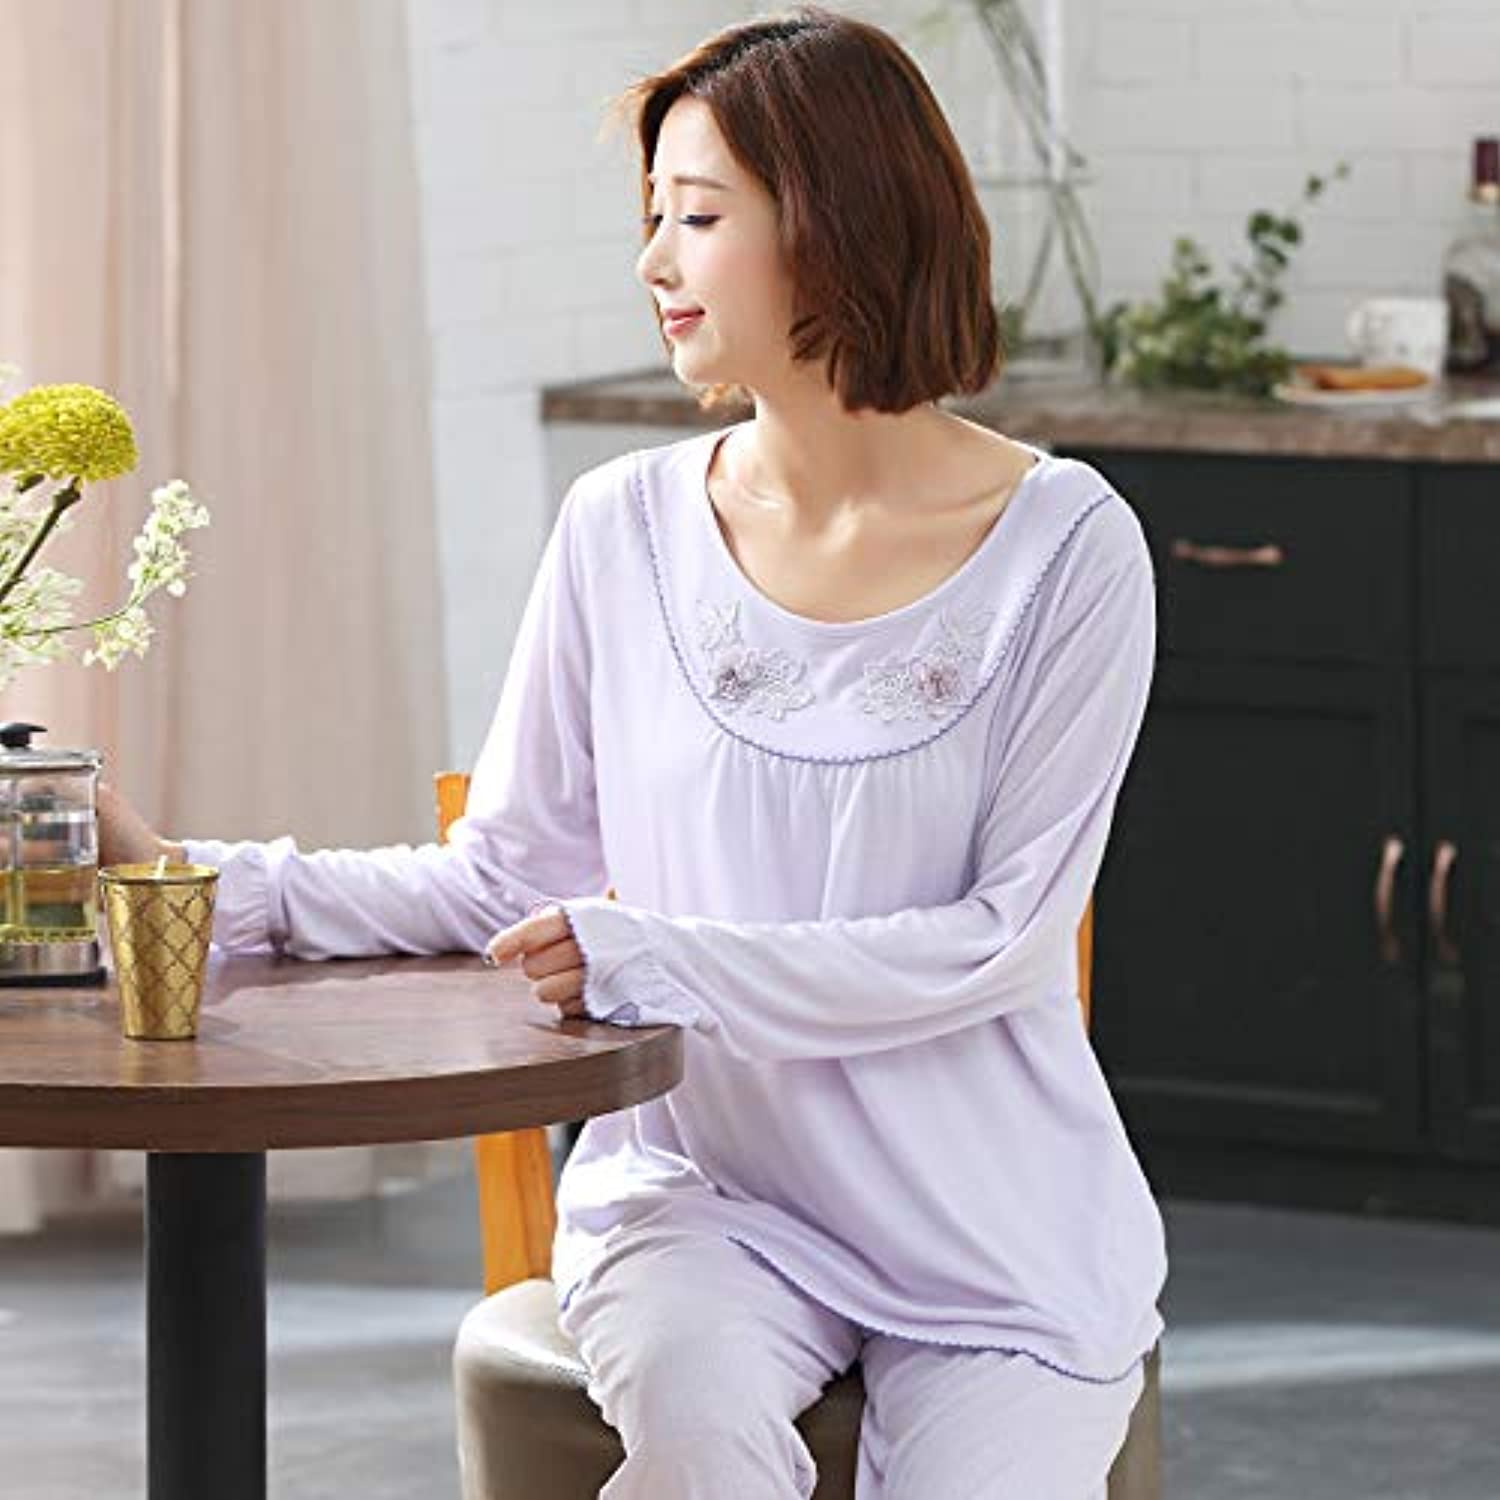 IANXI Home Spring and Autumn Pajamas Women Summer Modal Thin Section LongSleeved Cotton Large Size Loose MiddleAged Home Service Suit (Size   XXXL)